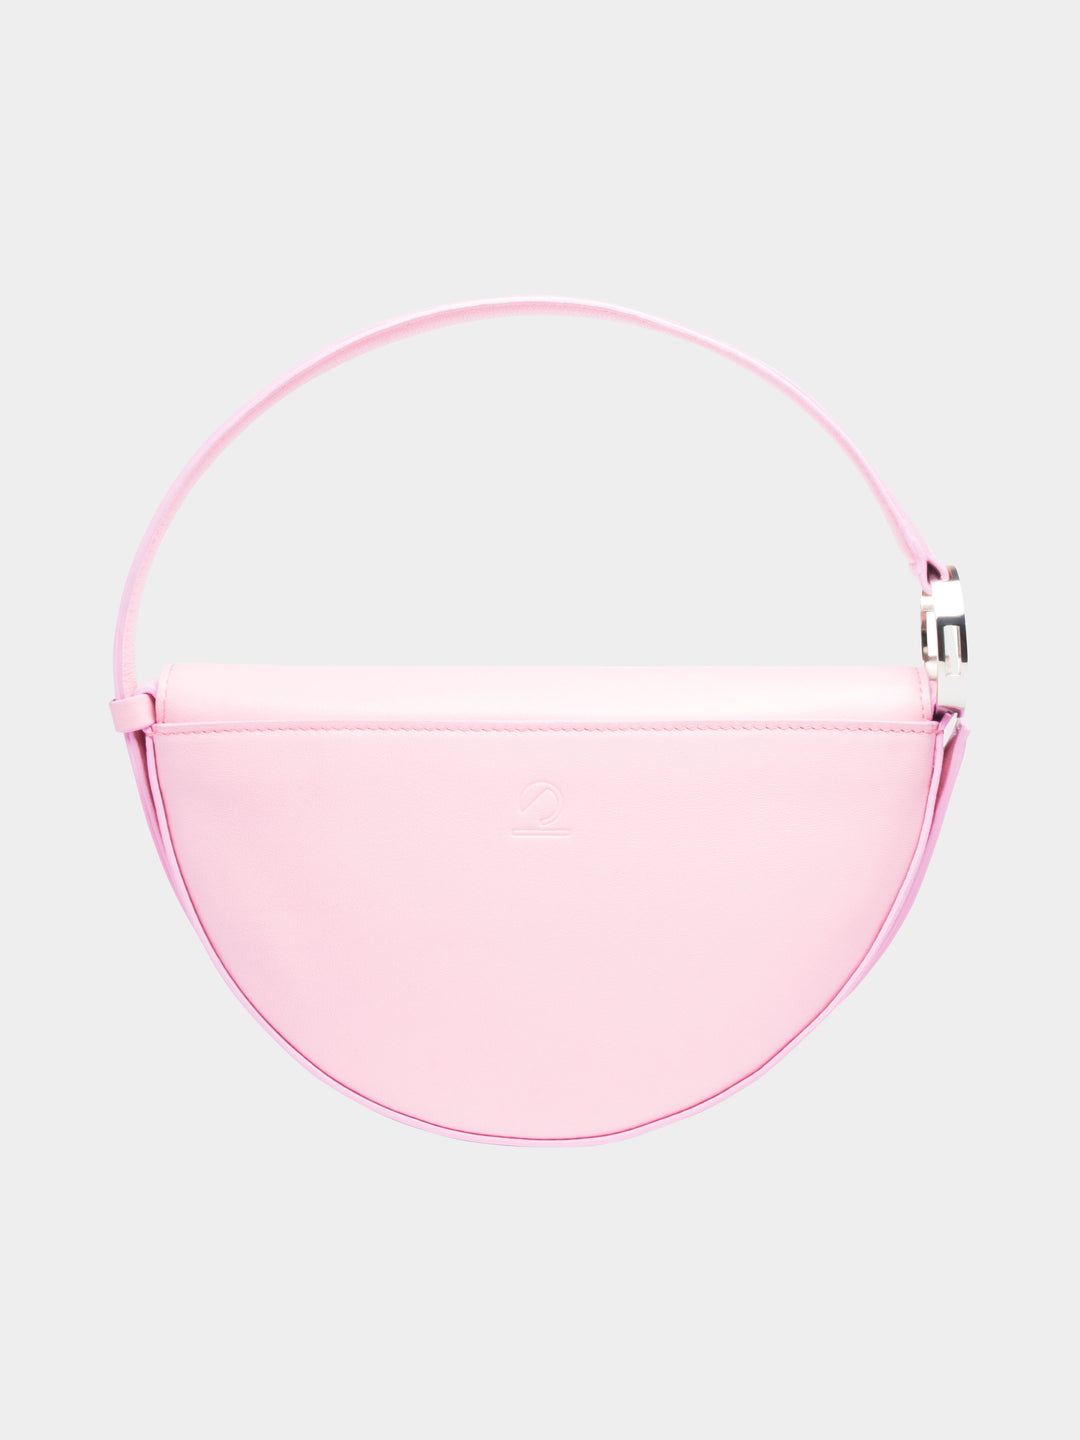 Dooz Libra Céleste leather handbag in color Blush (back view with stamp)